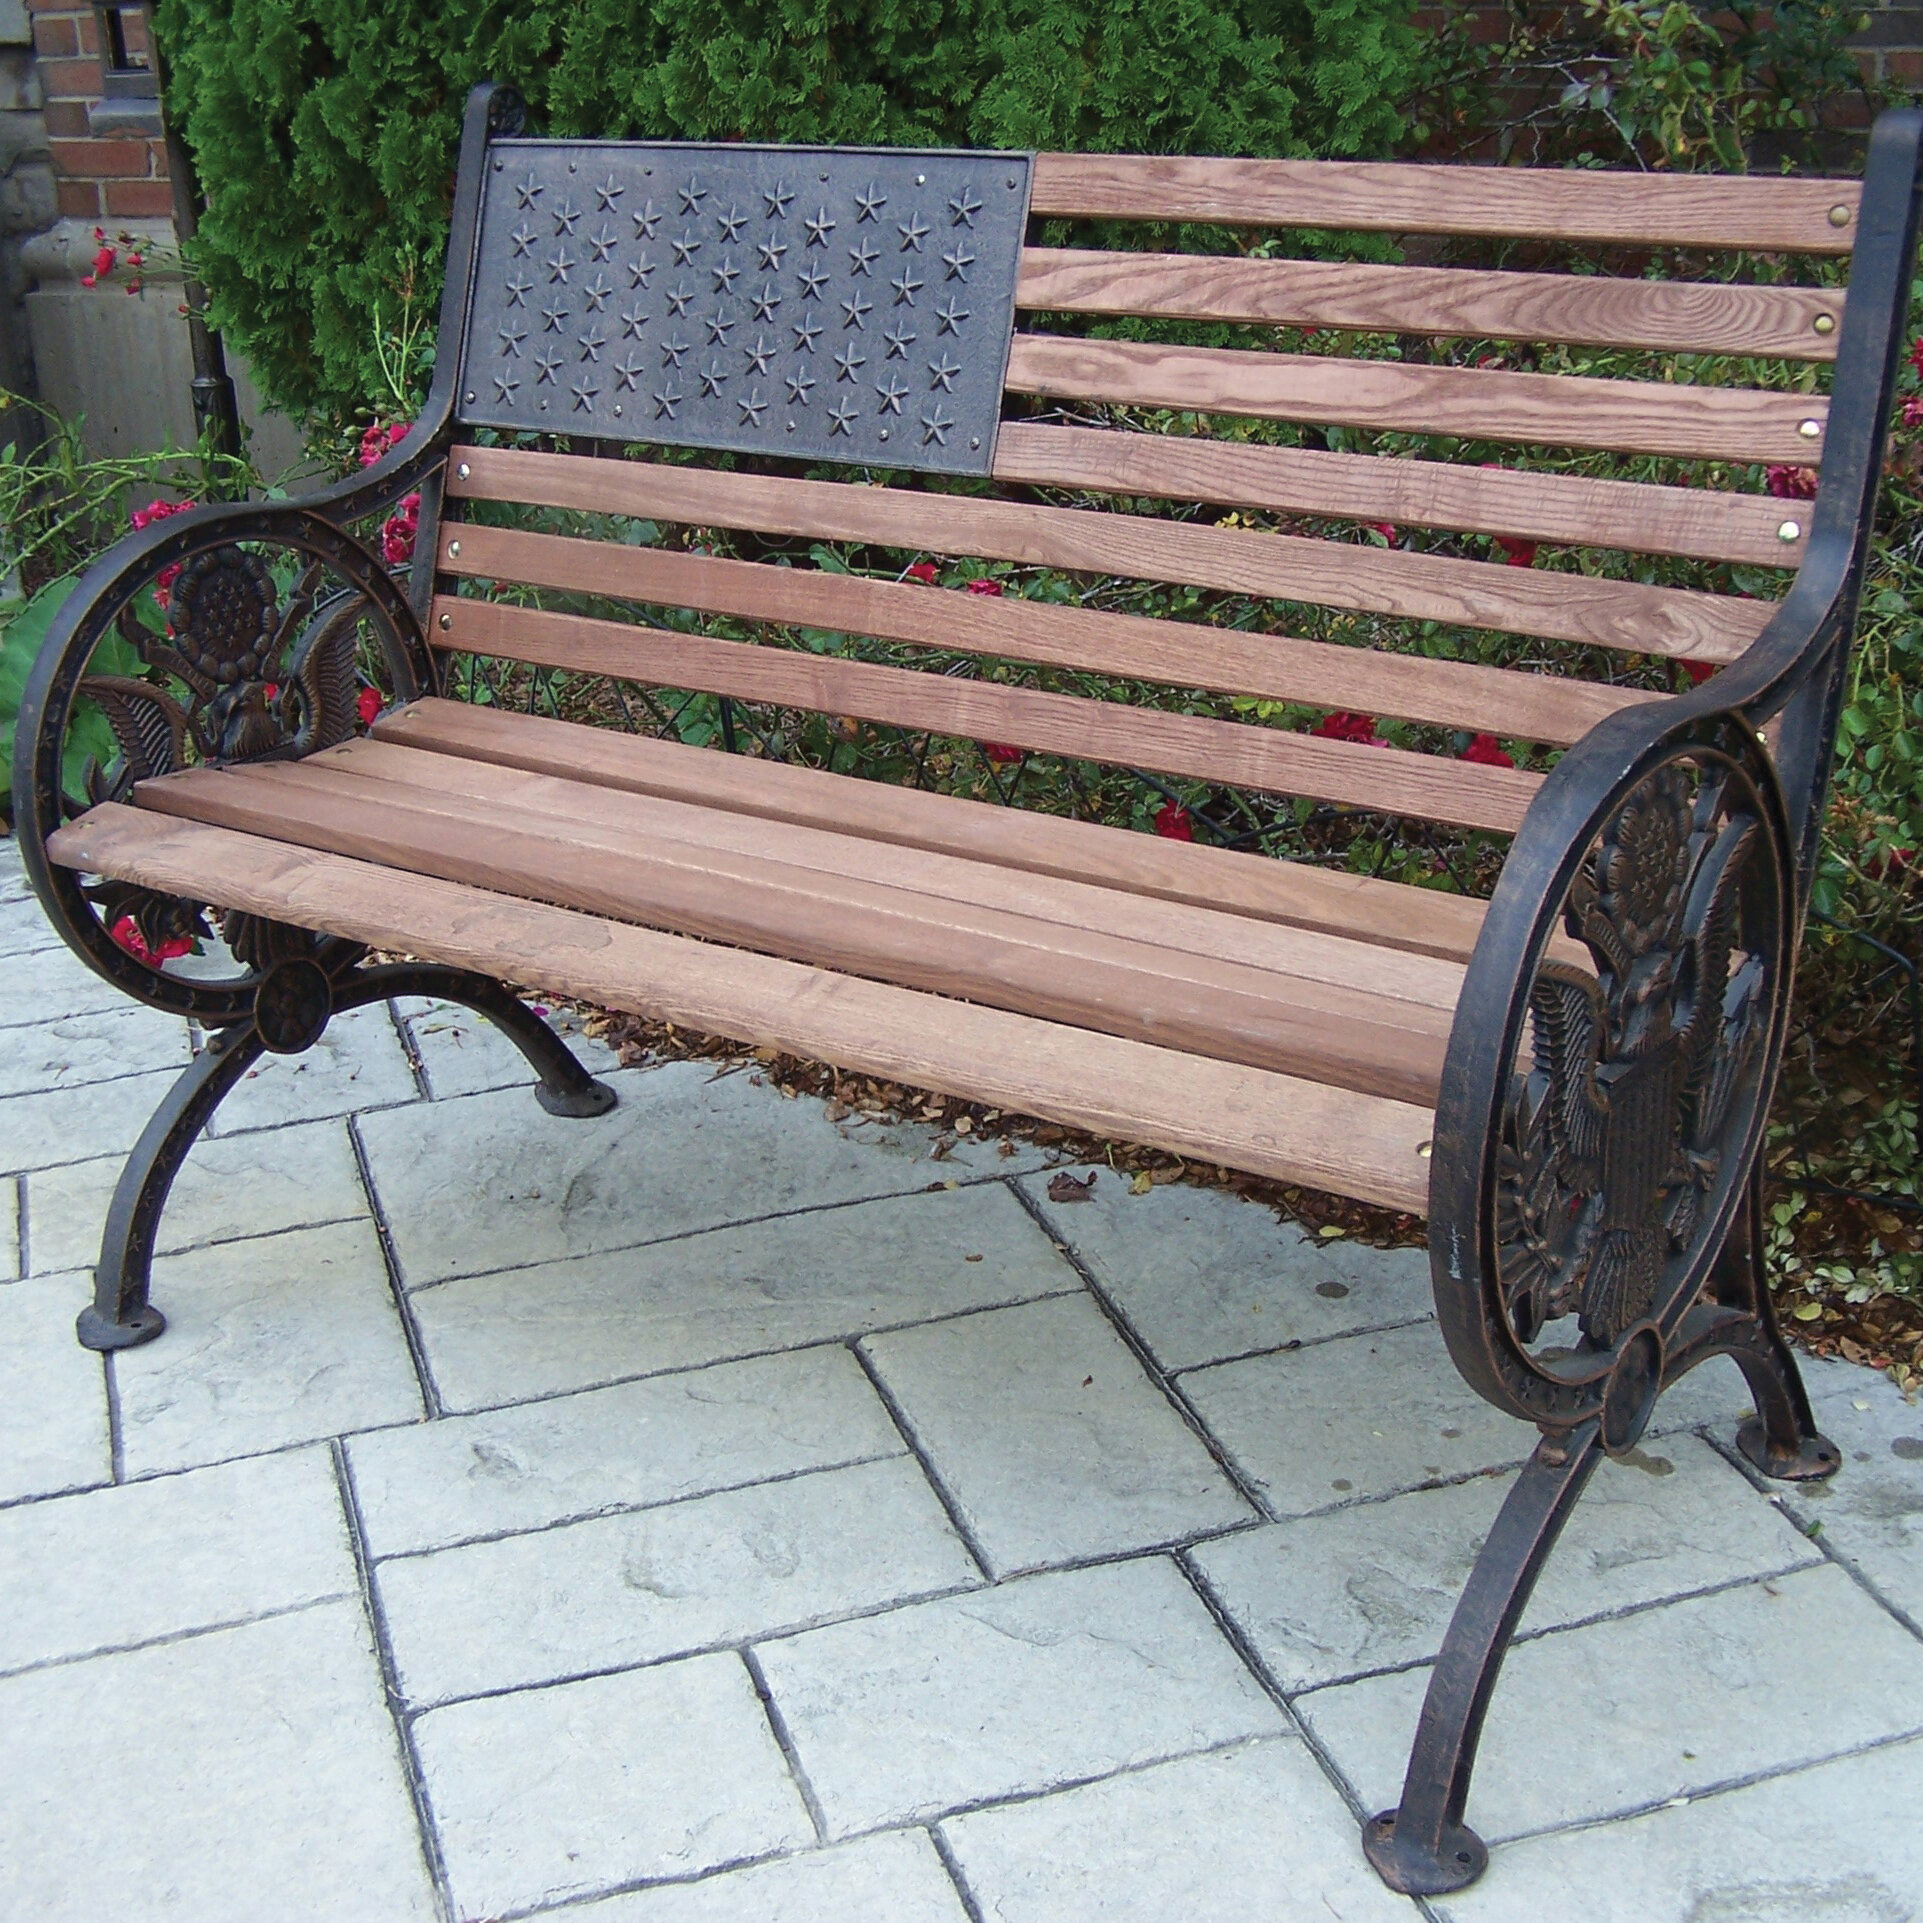 Proud American Wooden/Cast Iron Park Bench Throughout Madeline Vintage Bird Cast Iron Garden Benches (View 19 of 25)